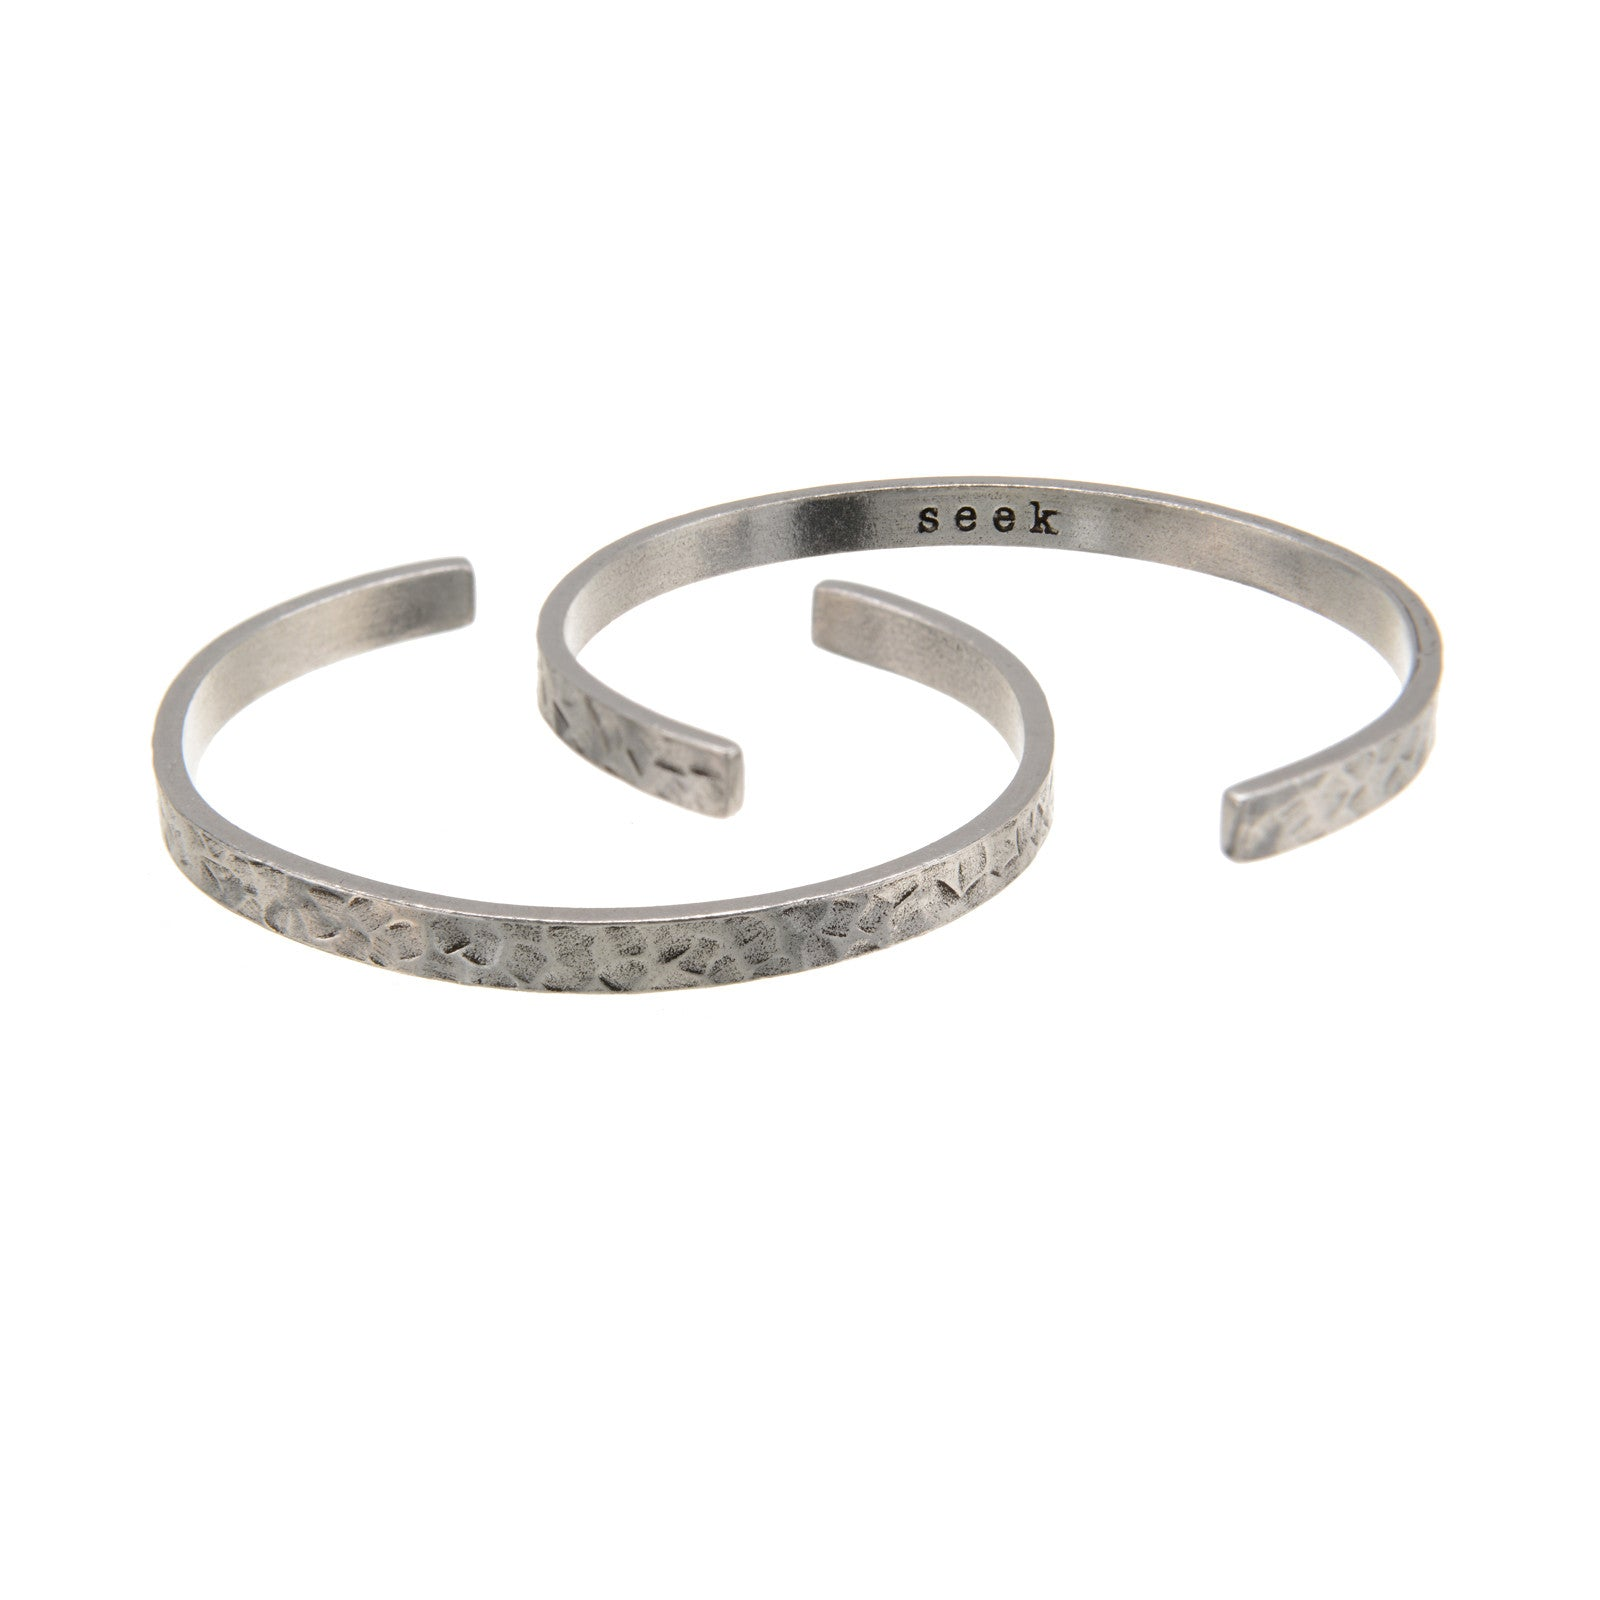 Seek DUDE Cuff Bracelet - Whitney Howard Designs